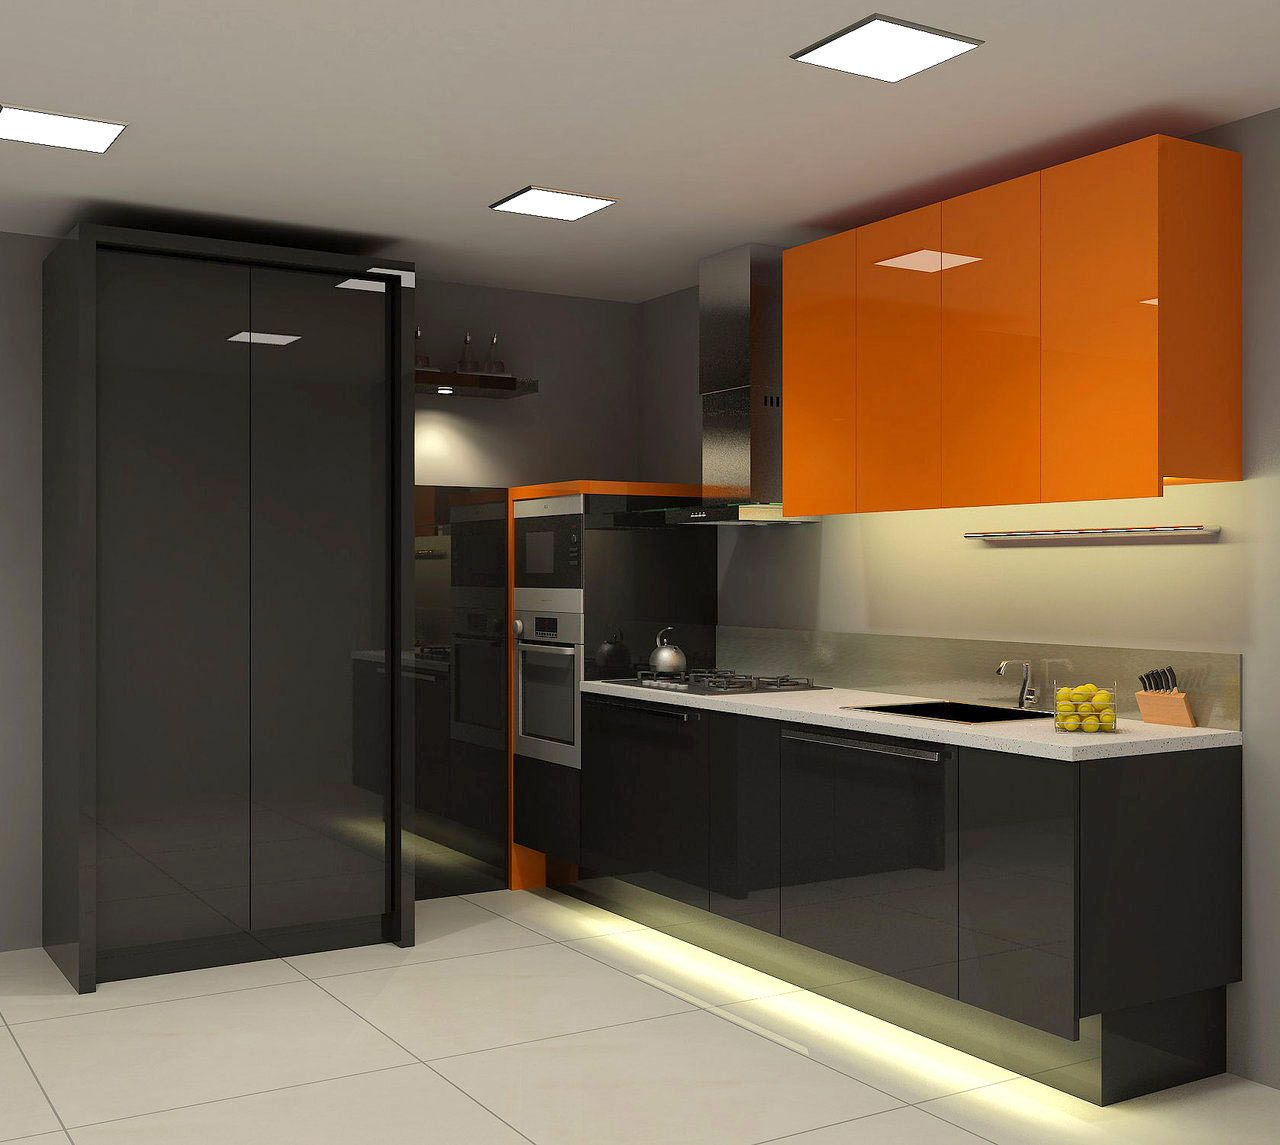 Modern Black Kitchen Cabinets Simply Cool Kitchen Design Idea With Sleek Black Kitchen Cabinets